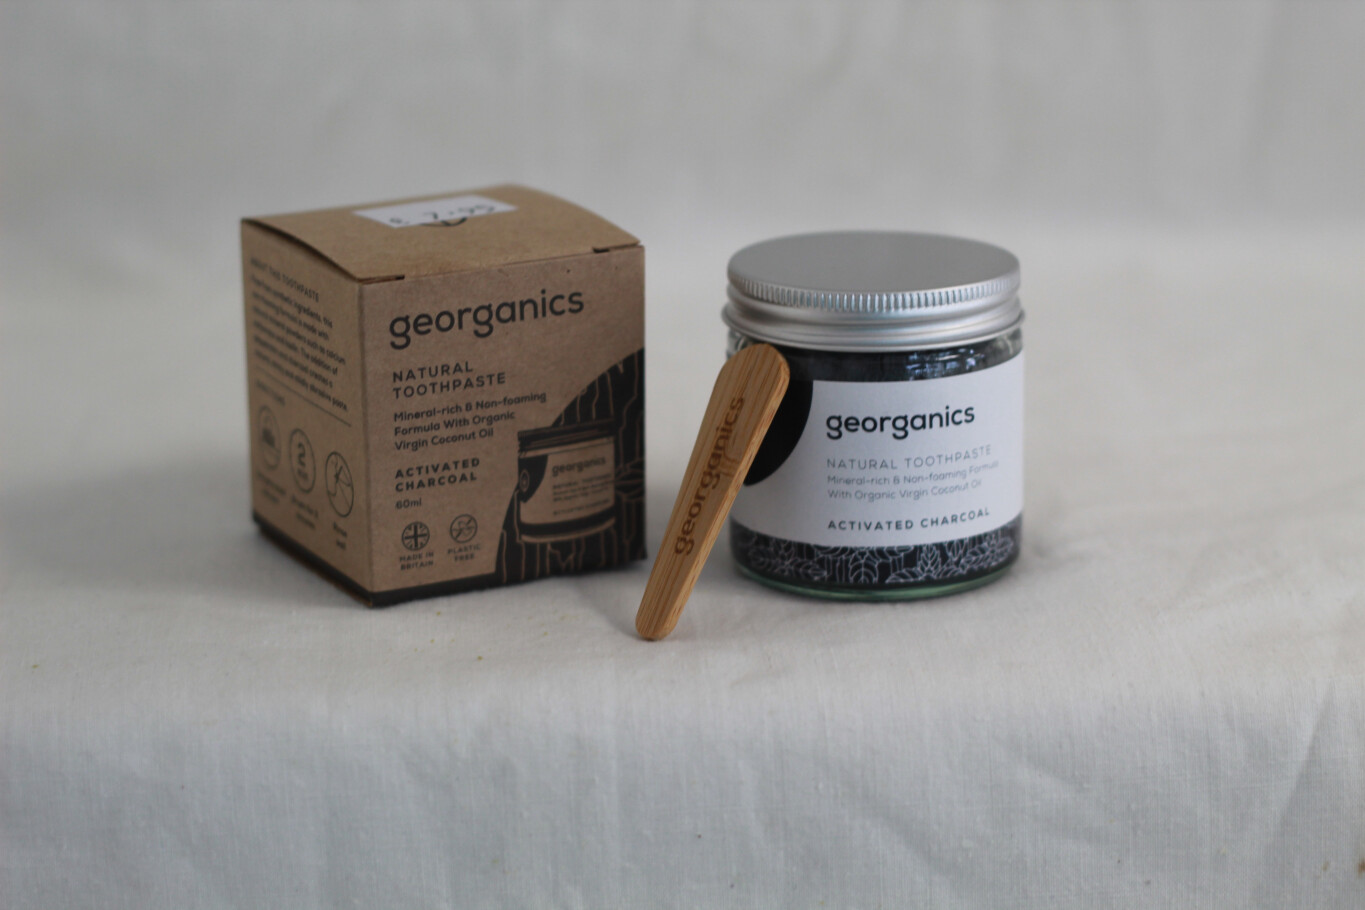 Geoganics Natural Toothpaste Activated Charcoal 60ml